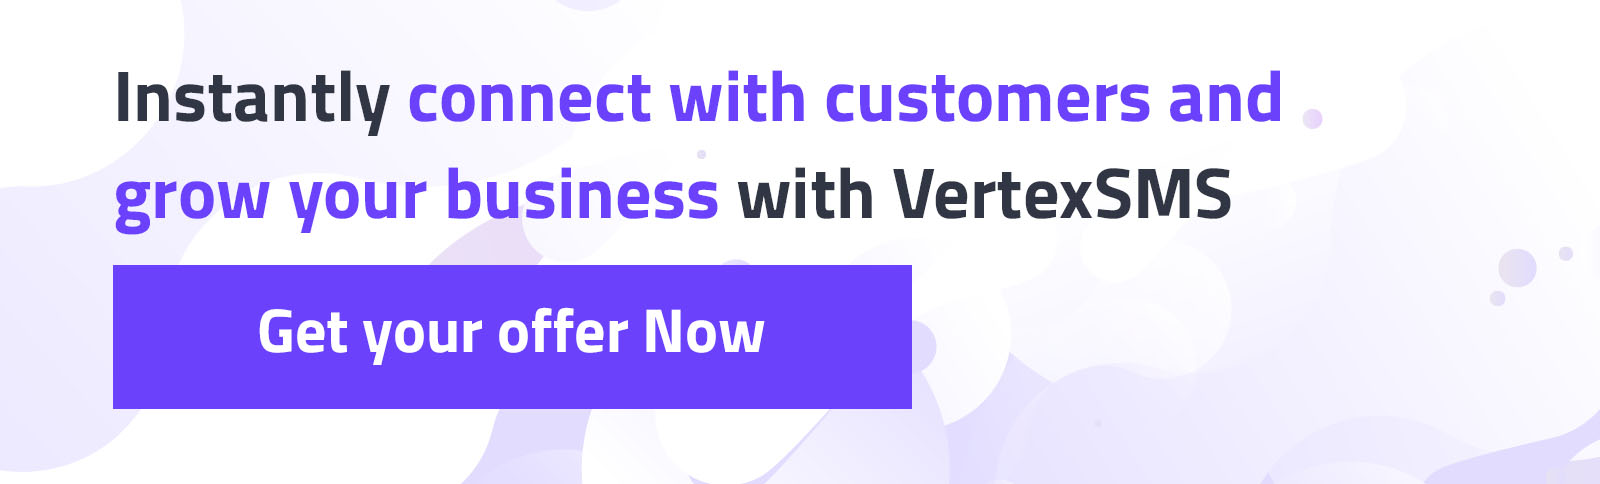 Instantly connect with customers and grow your business with VertexSMS